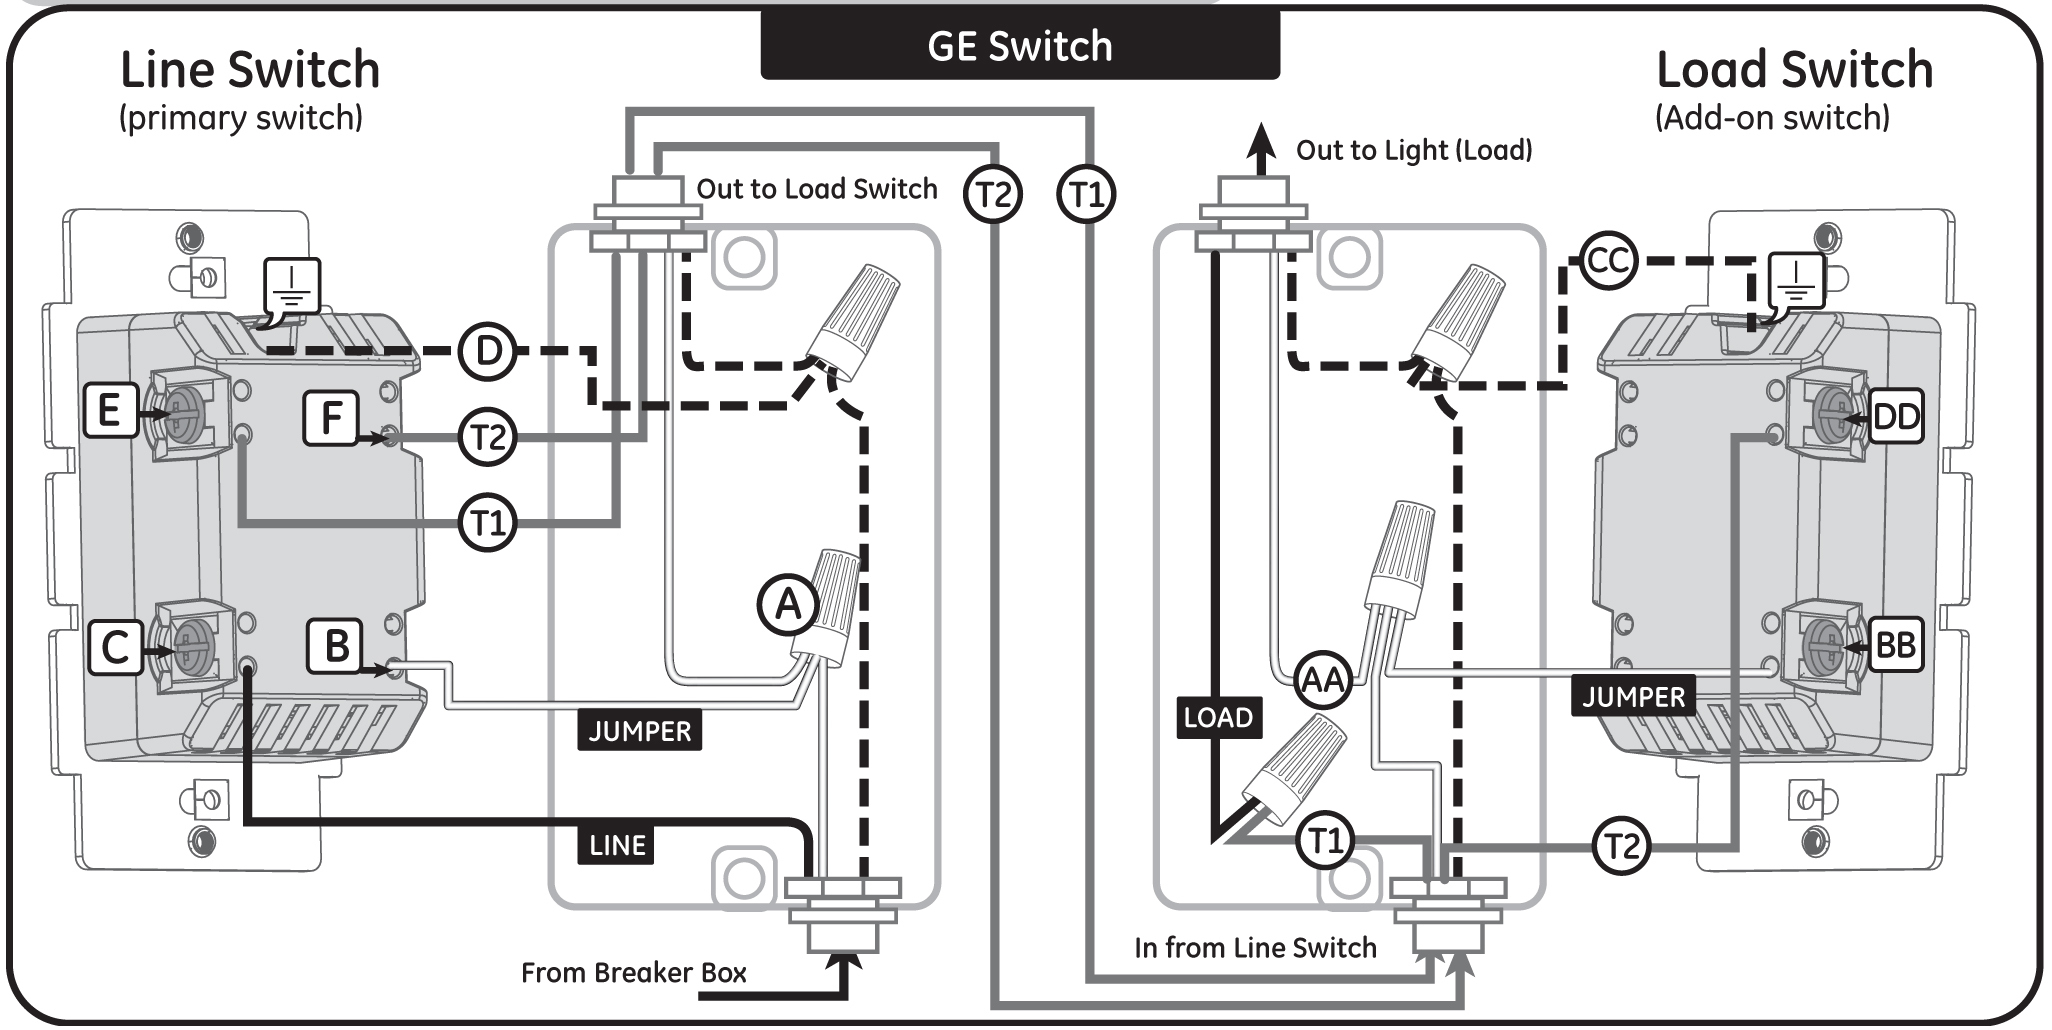 Dimmer Switch 6683 Wiring | Wiring Diagram - Leviton Dimmers Wiring Diagram